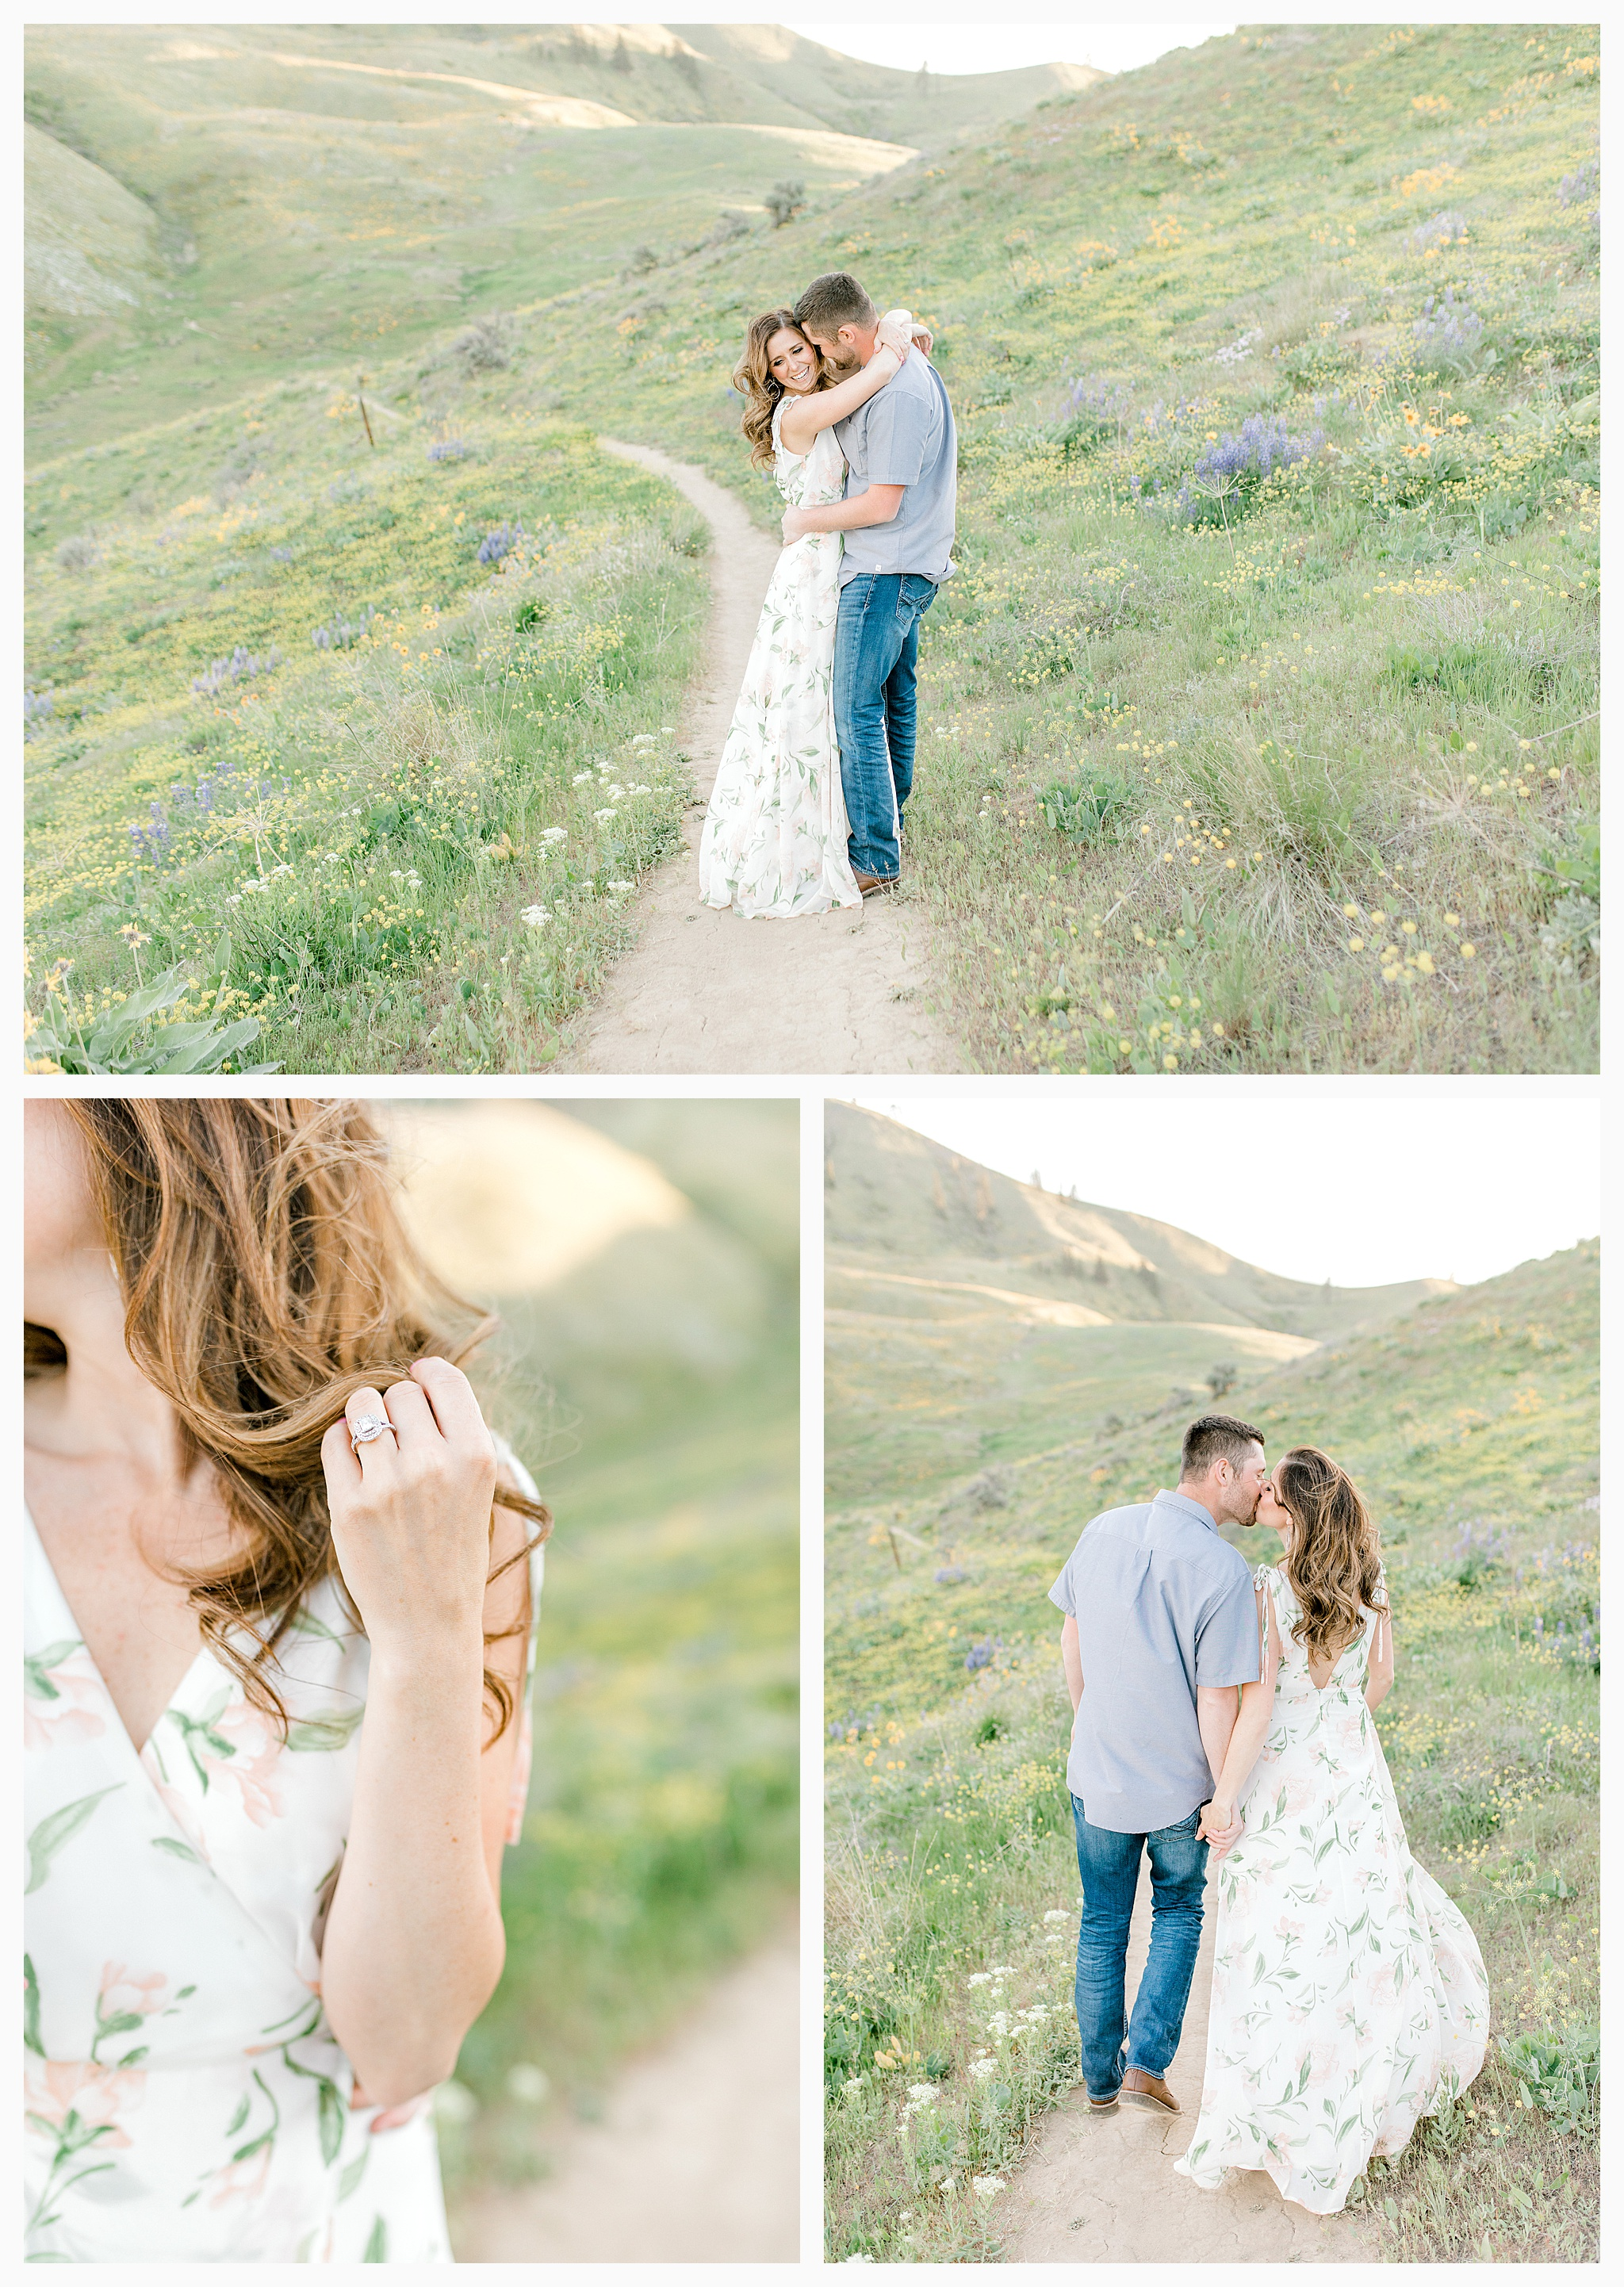 Engagement session amongst the wildflowers in Wenatchee, Washington | Engagement Session Outfit Inspiration for Wedding Photography with Emma Rose Company | Light and Airy PNW Photographer, Seattle Bride_0011.jpg